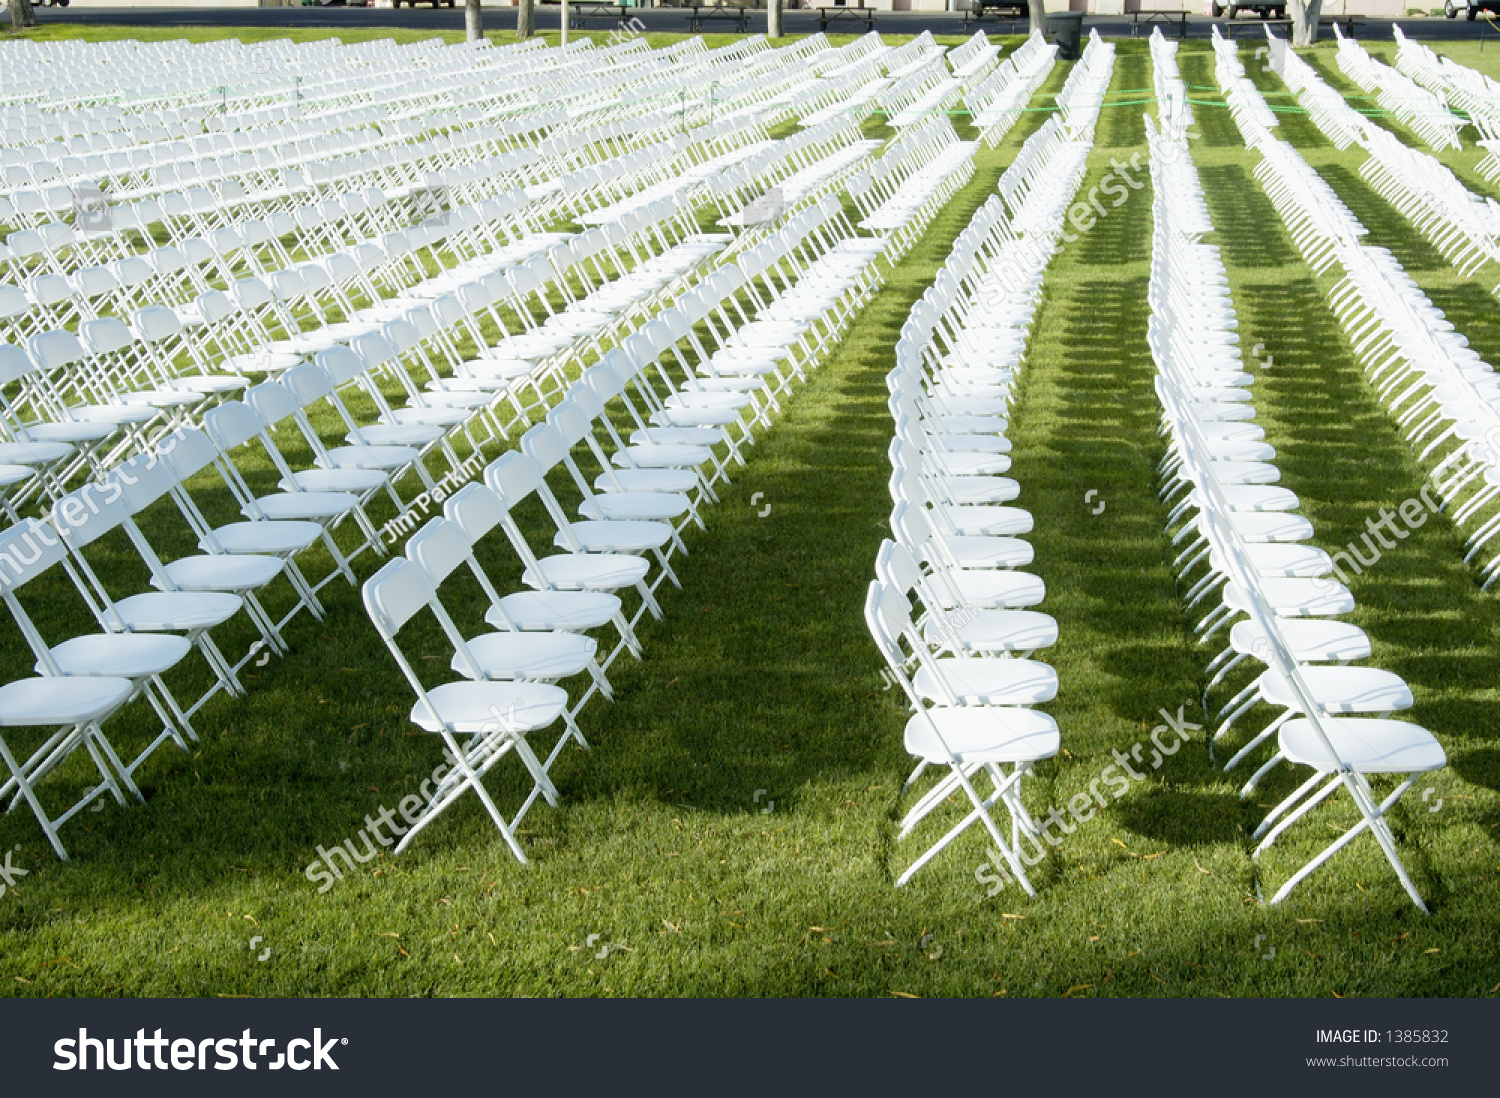 Folding Chairs Set Up For A College Graduation Ceremony.